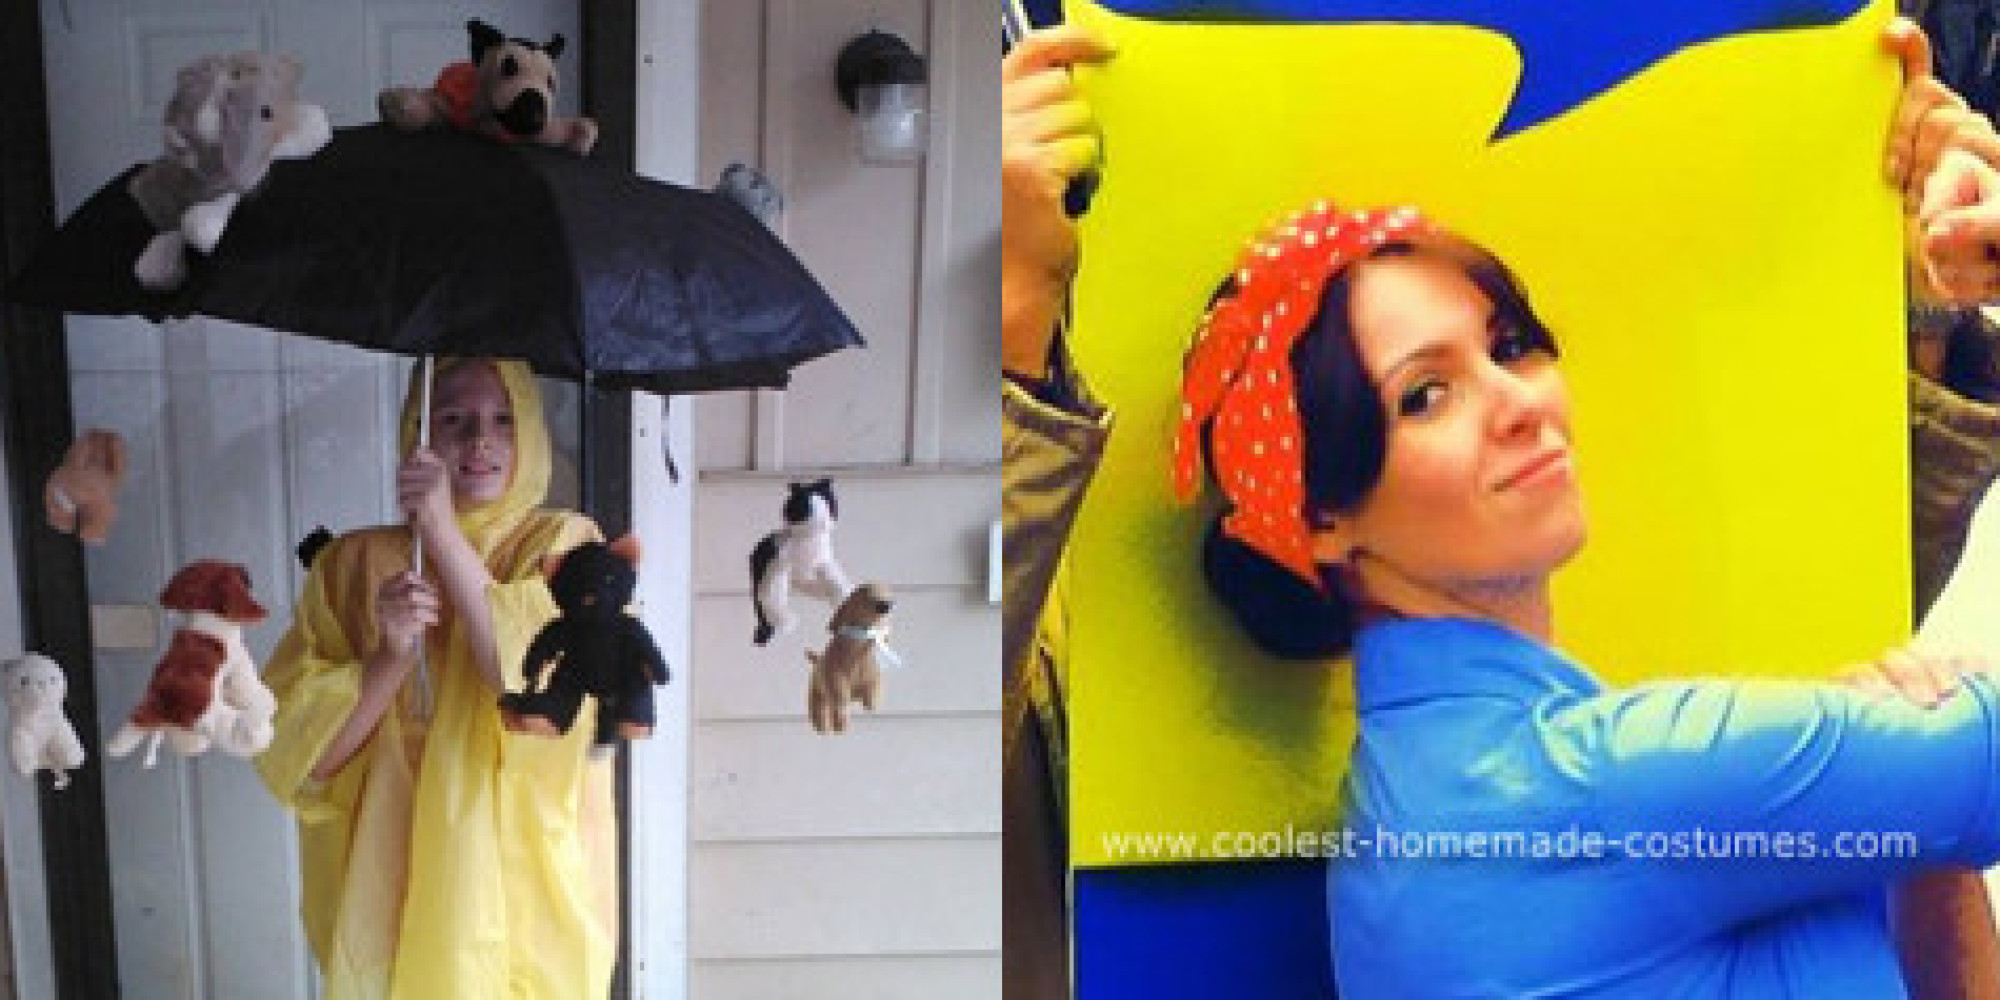 Cheap Halloween Costumes: 20 Easy Ideas To Start Thinking About Now